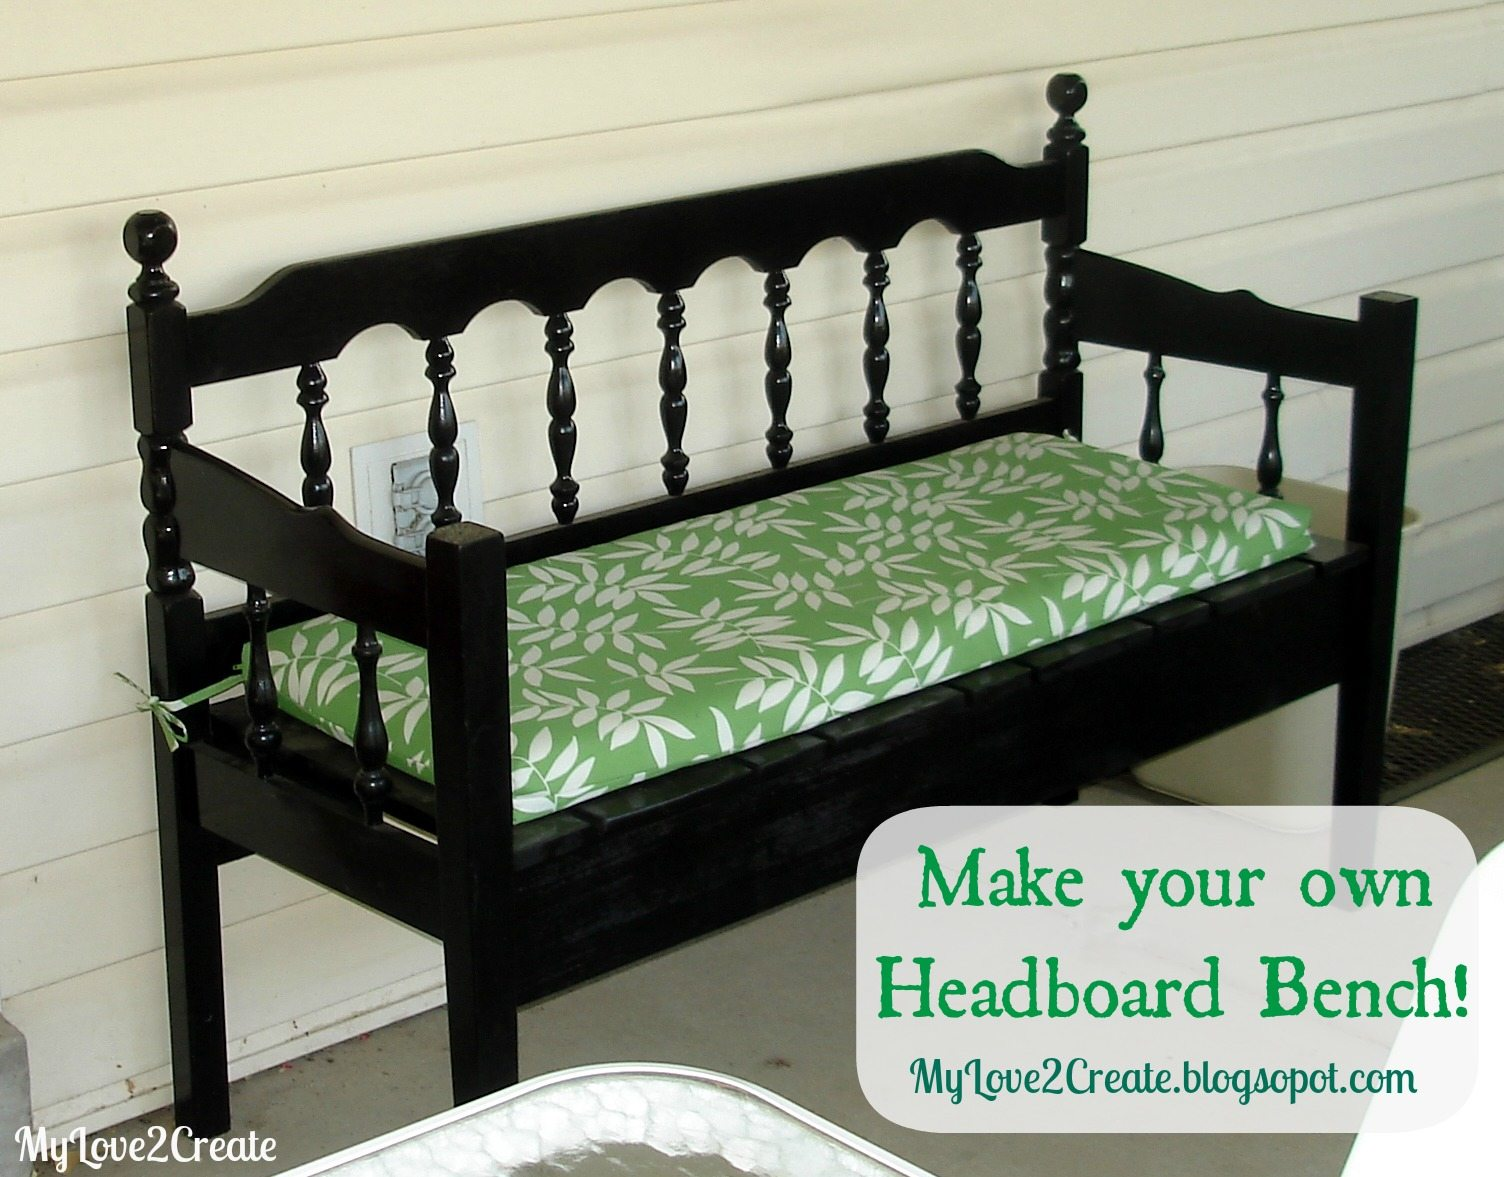 Unique Headboard bench MyLoveCreate